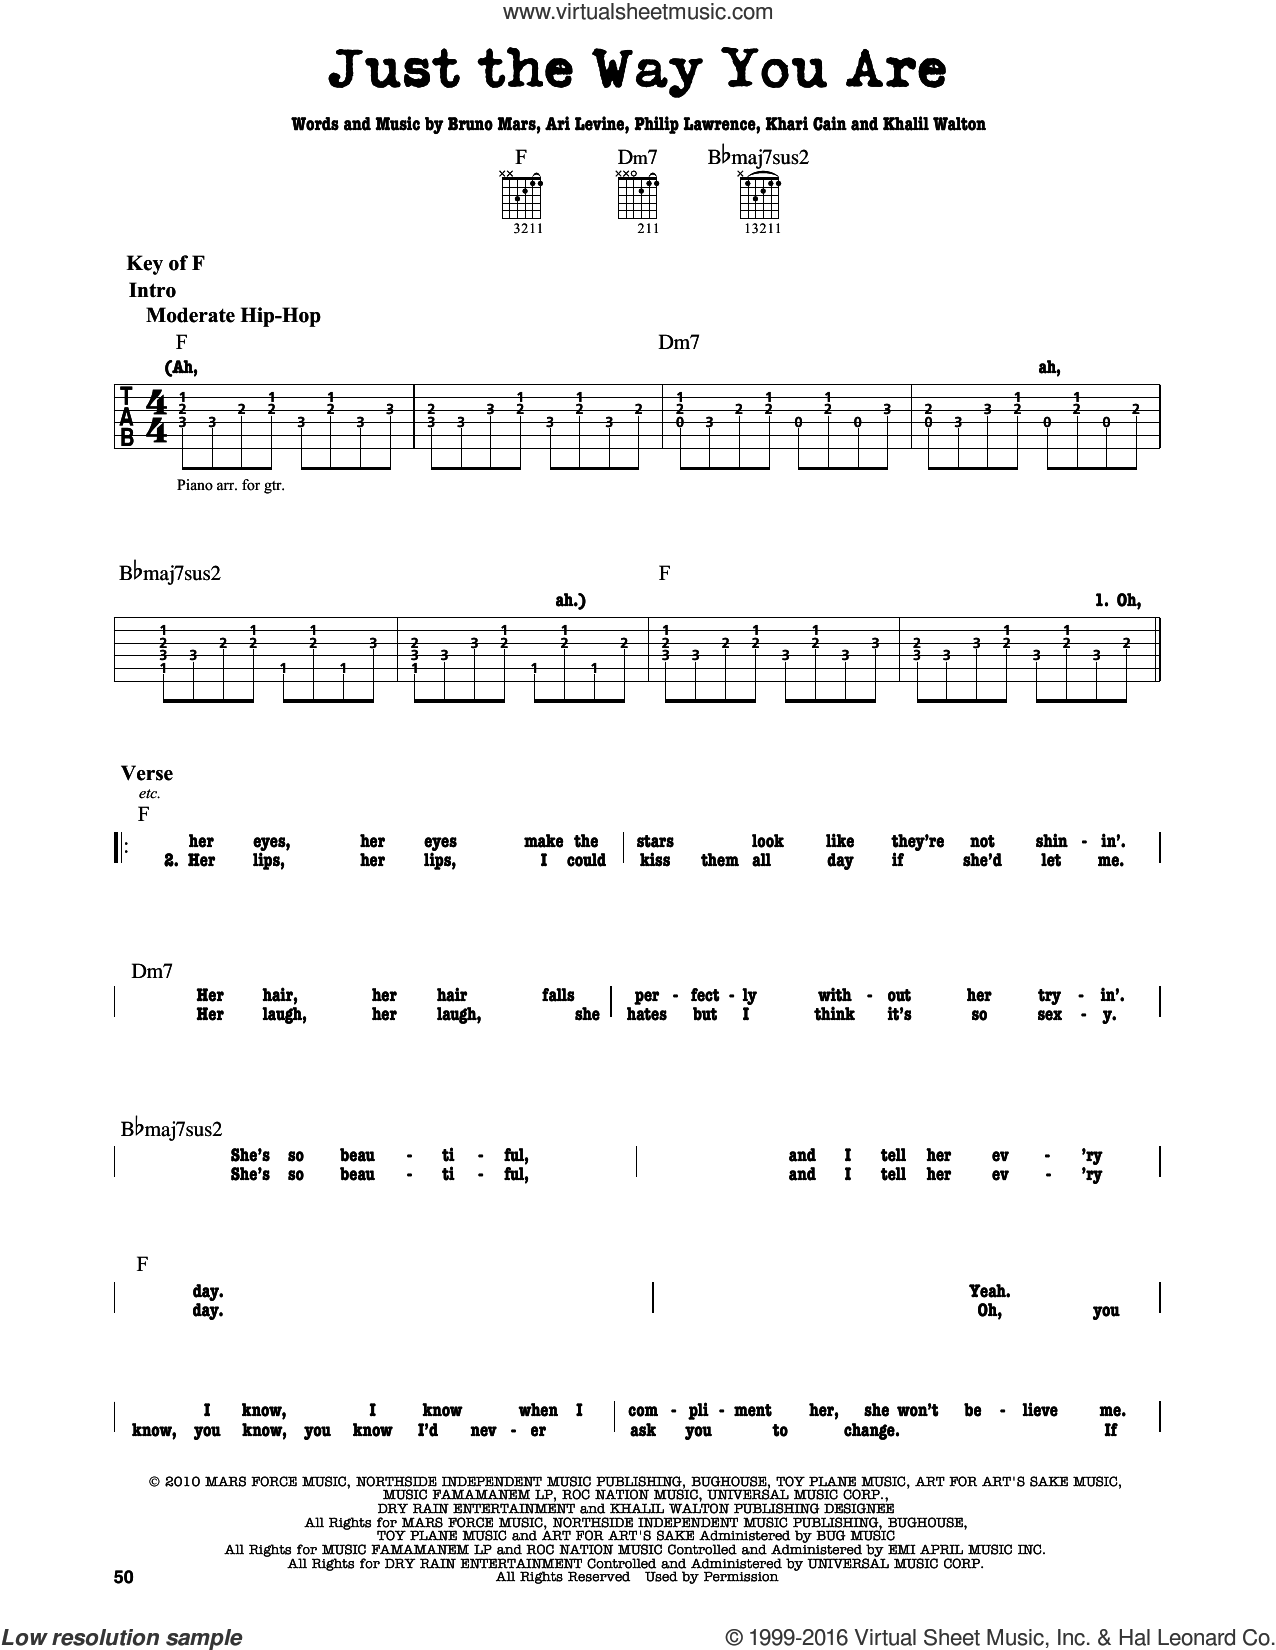 Just The Way You Are sheet music for guitar solo (lead sheet) by Bruno Mars, Ari Levine, Khalil Walton, Khari Cain and Philip Lawrence, intermediate guitar (lead sheet). Score Image Preview.